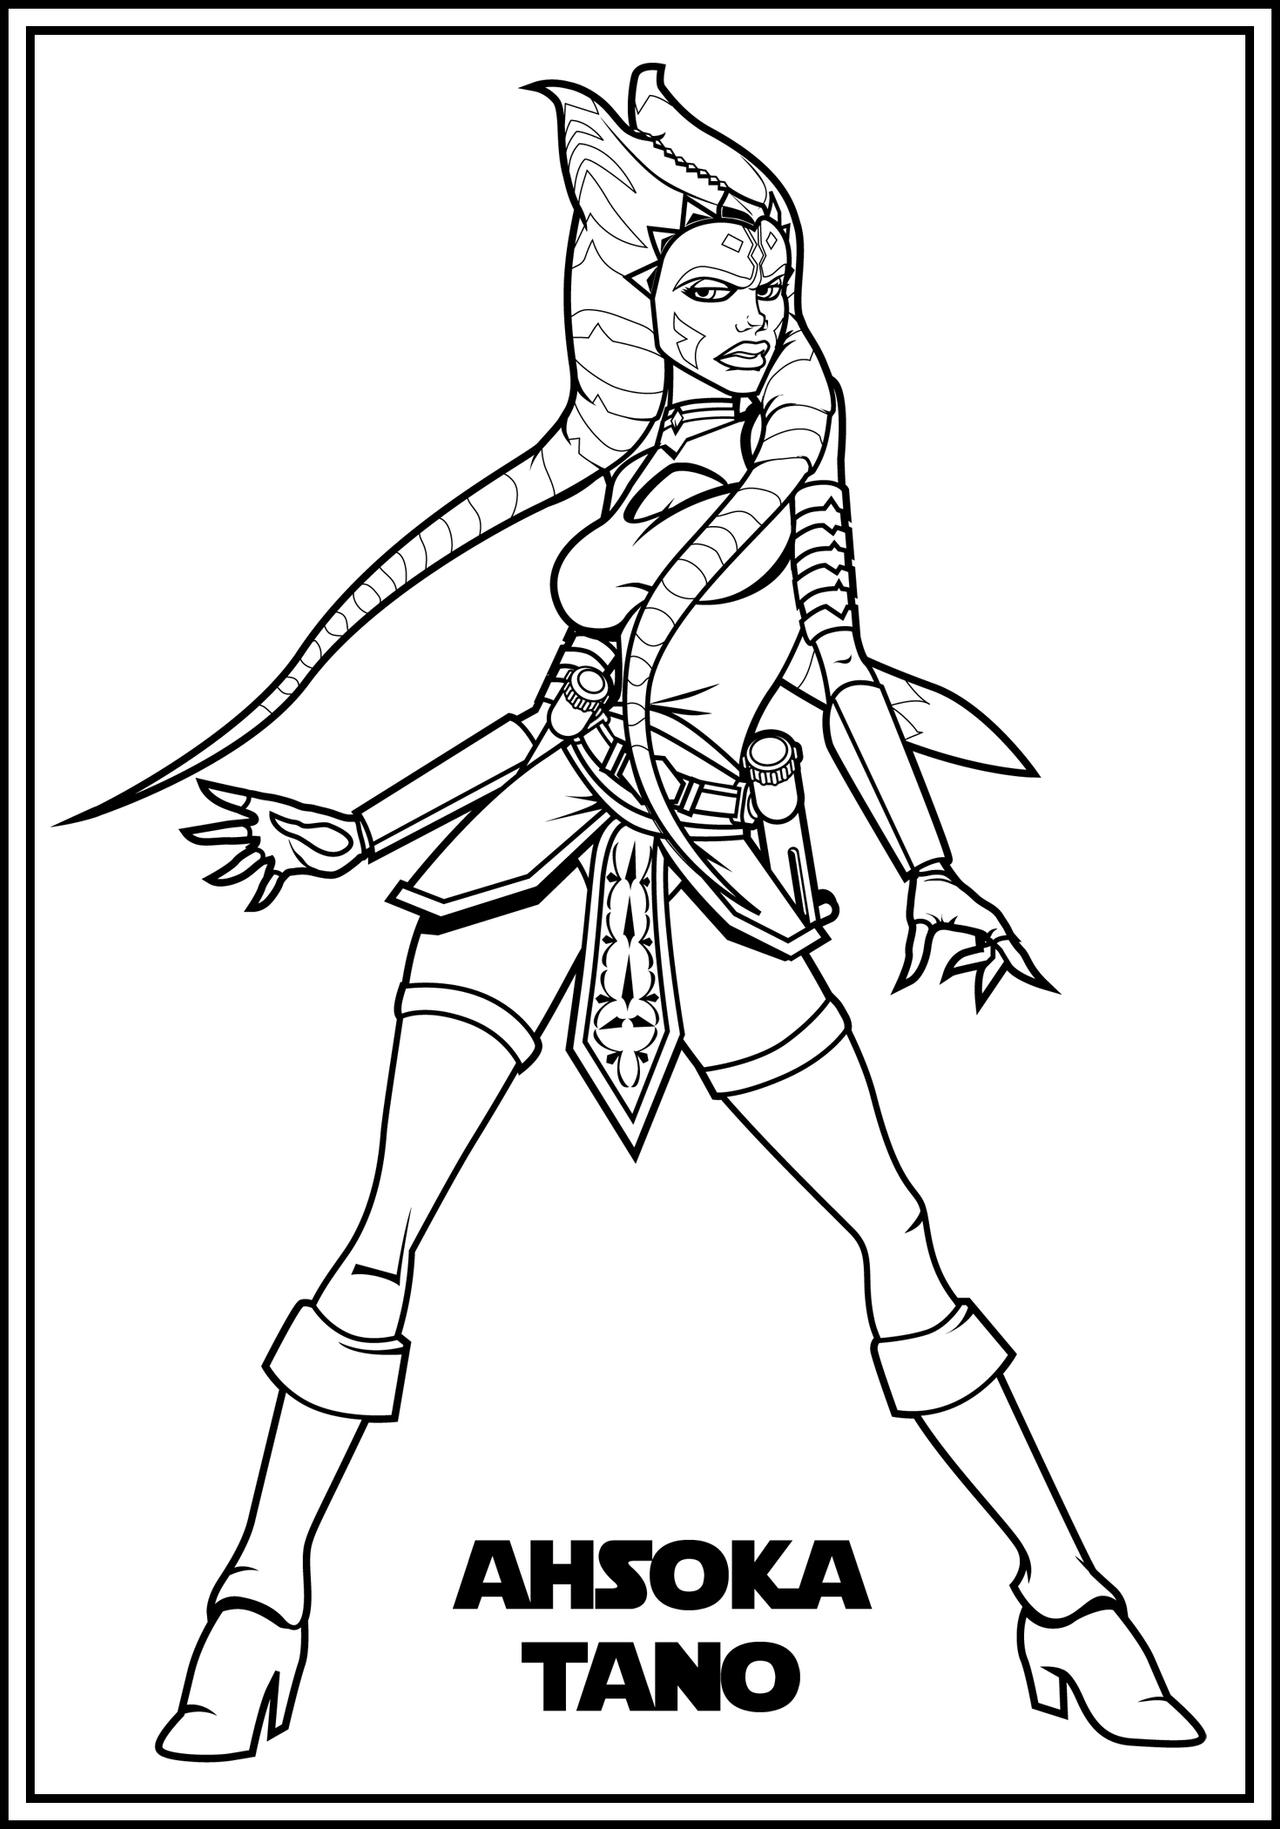 Adult ahsoka color me by the first magelord on deviantart for Star wars christmas coloring pages